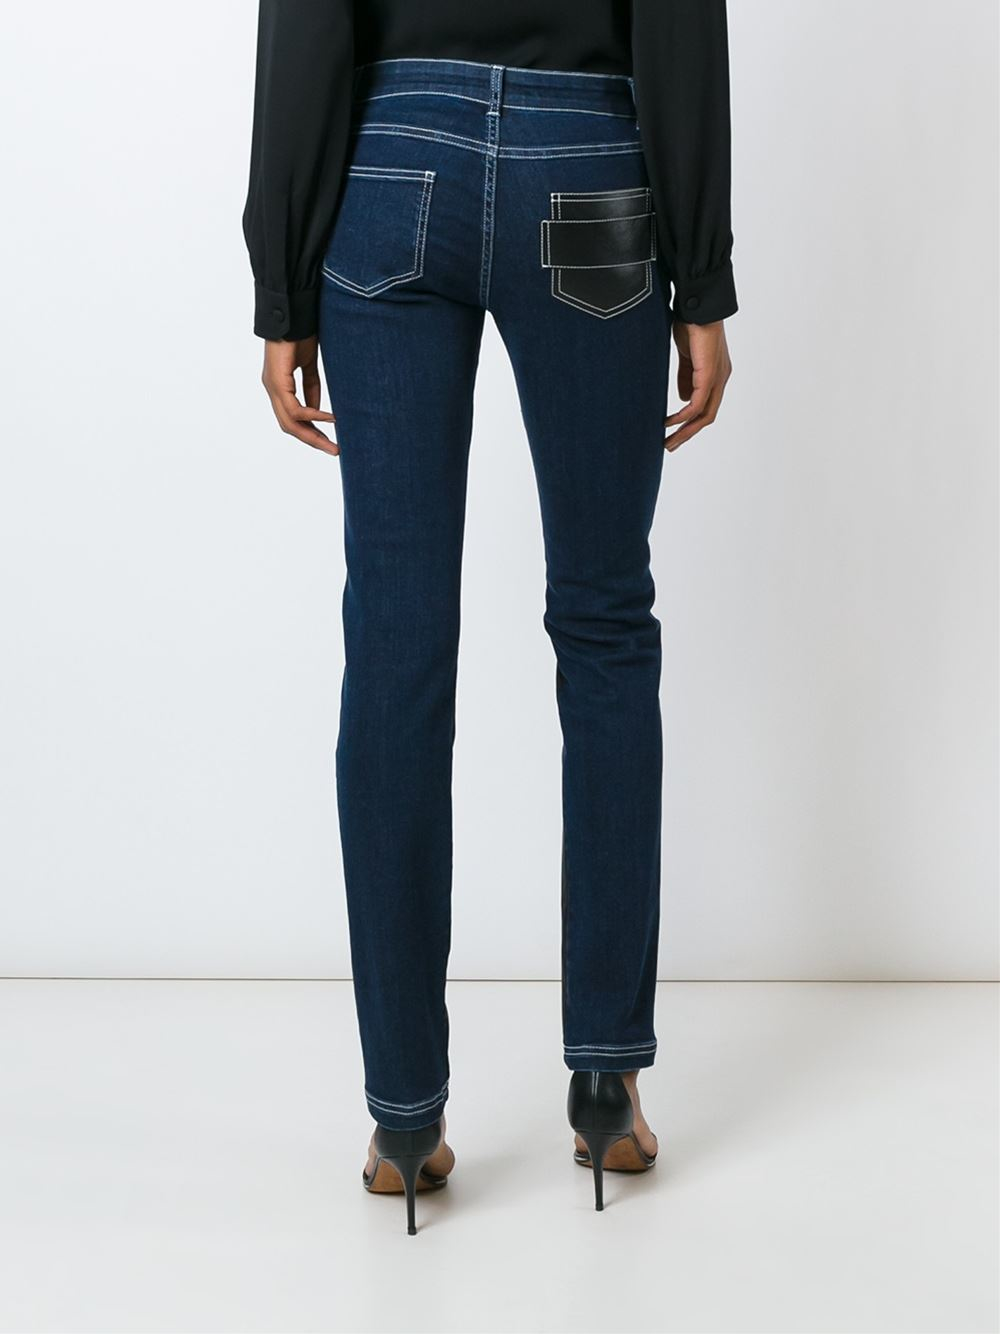 Givenchy Denim Skinny Panelled Jeans in Blue